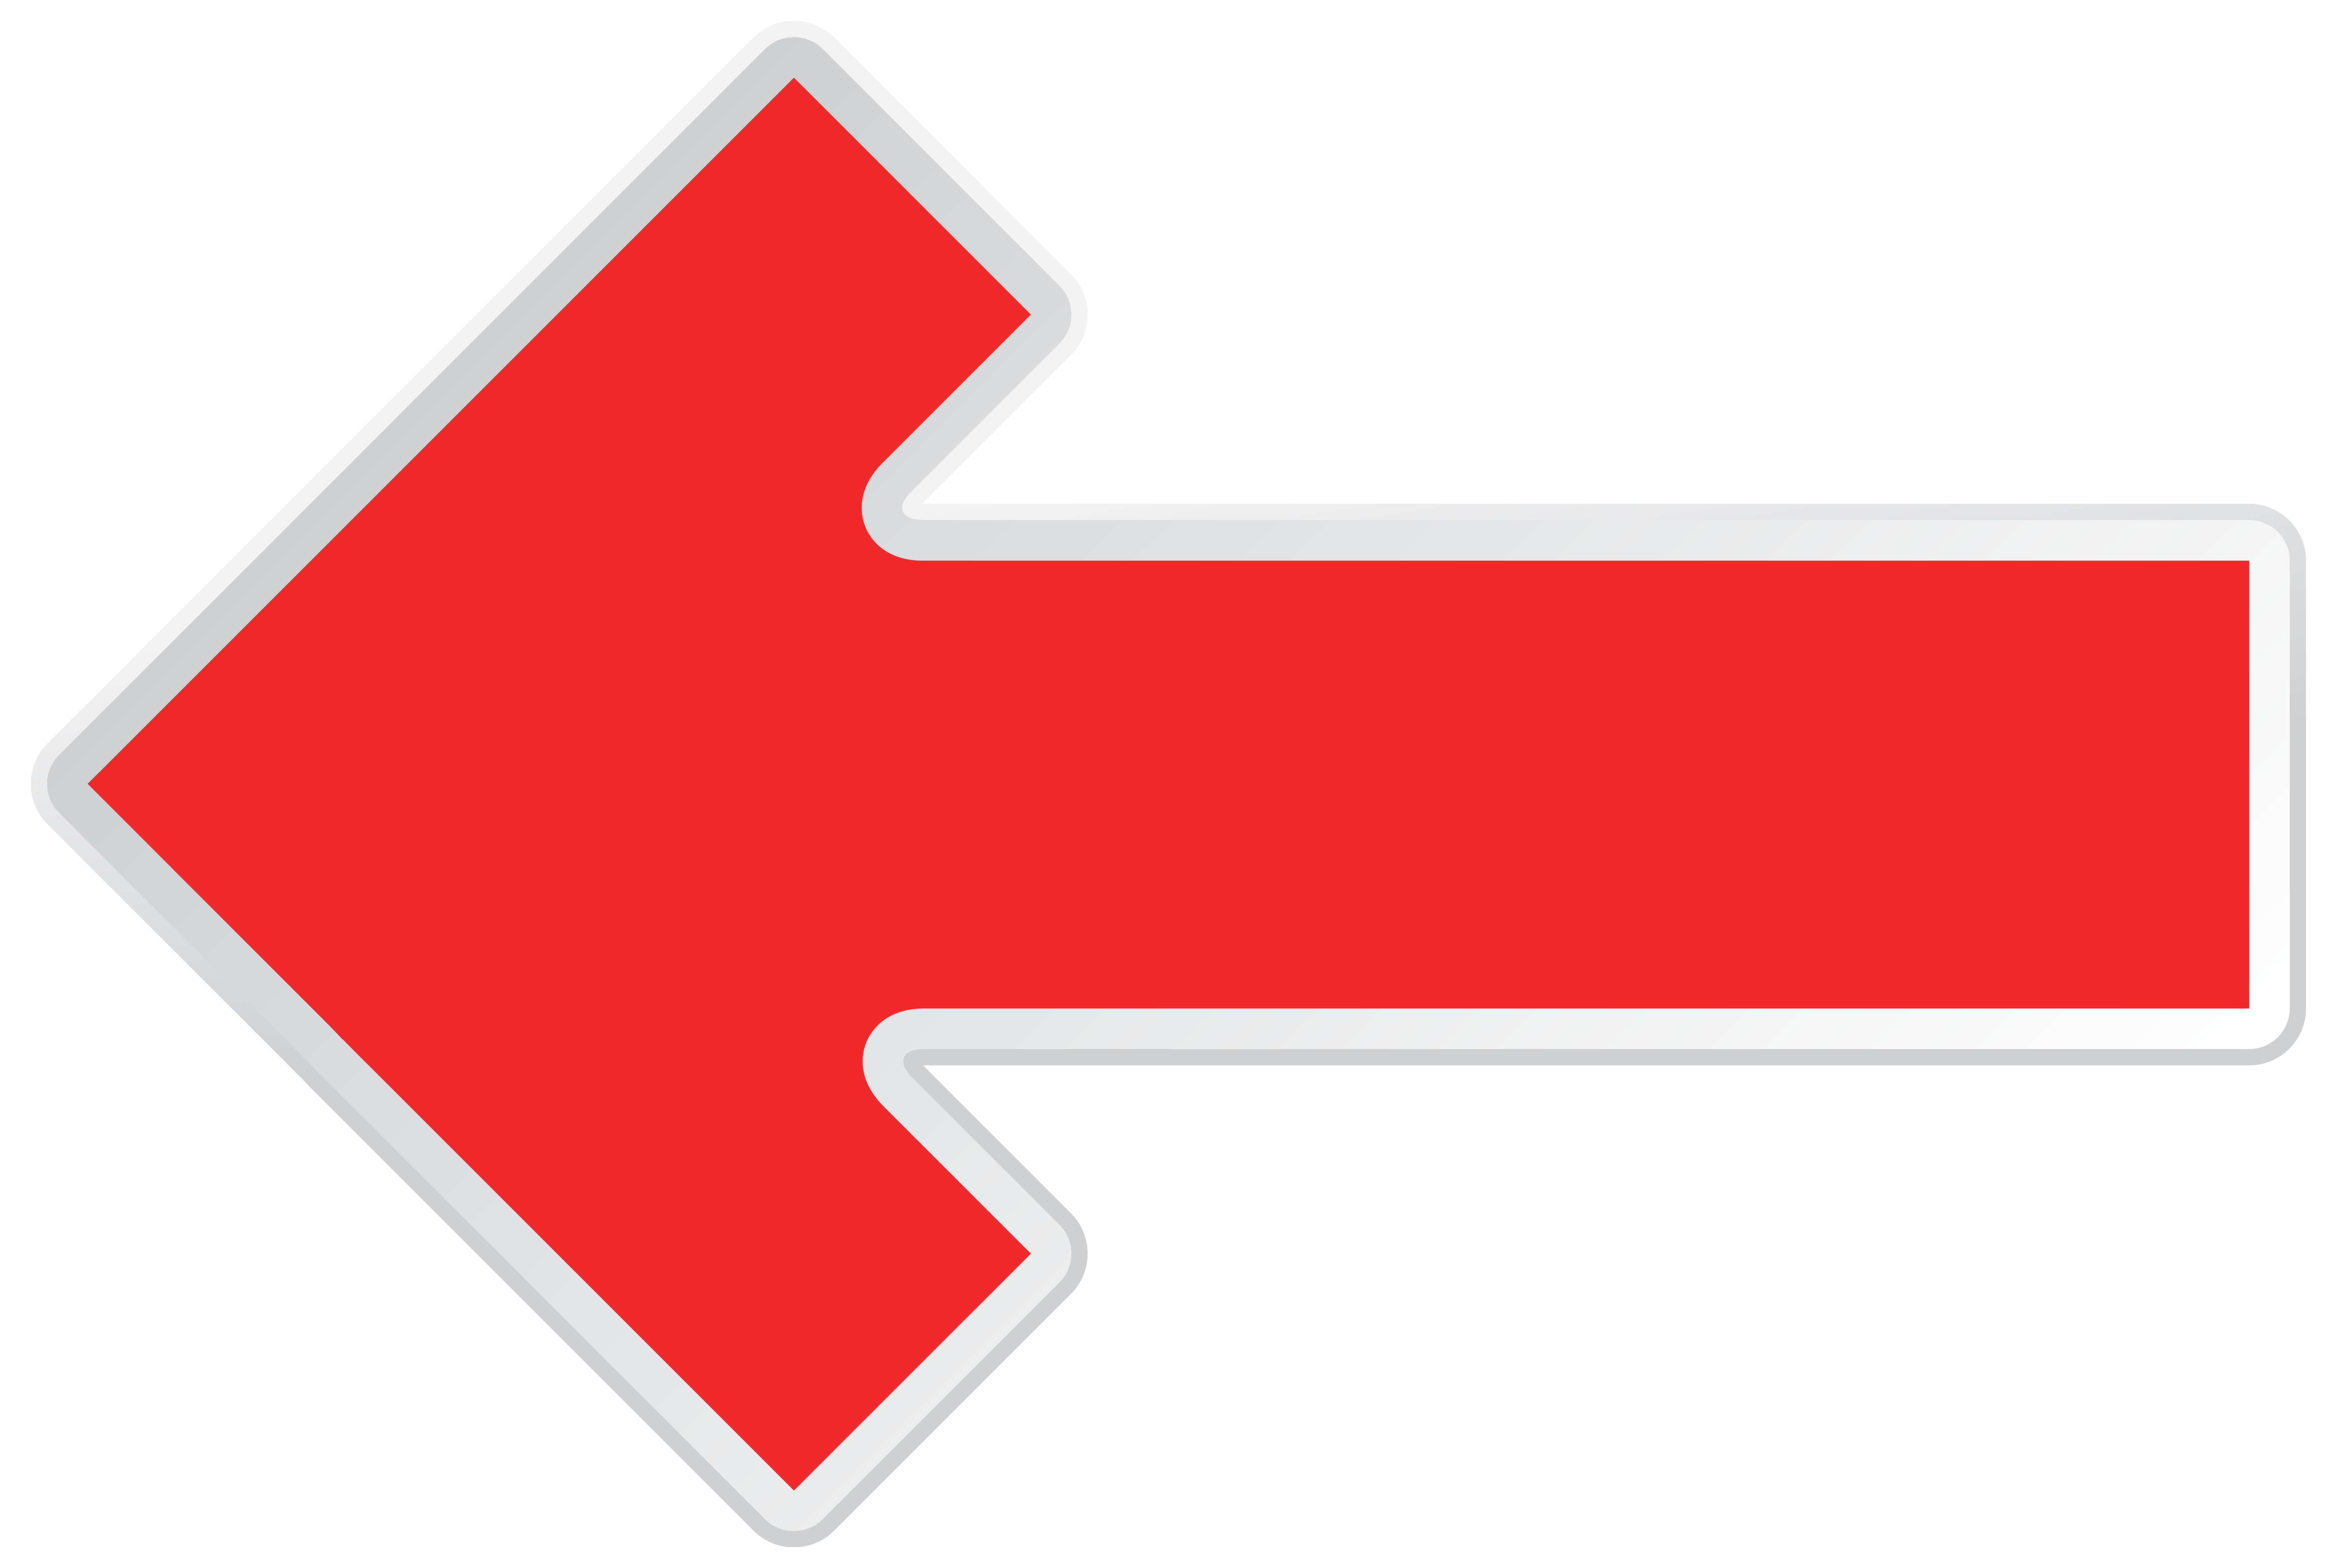 Left transparent clip art. Red right arrow png vector library stock